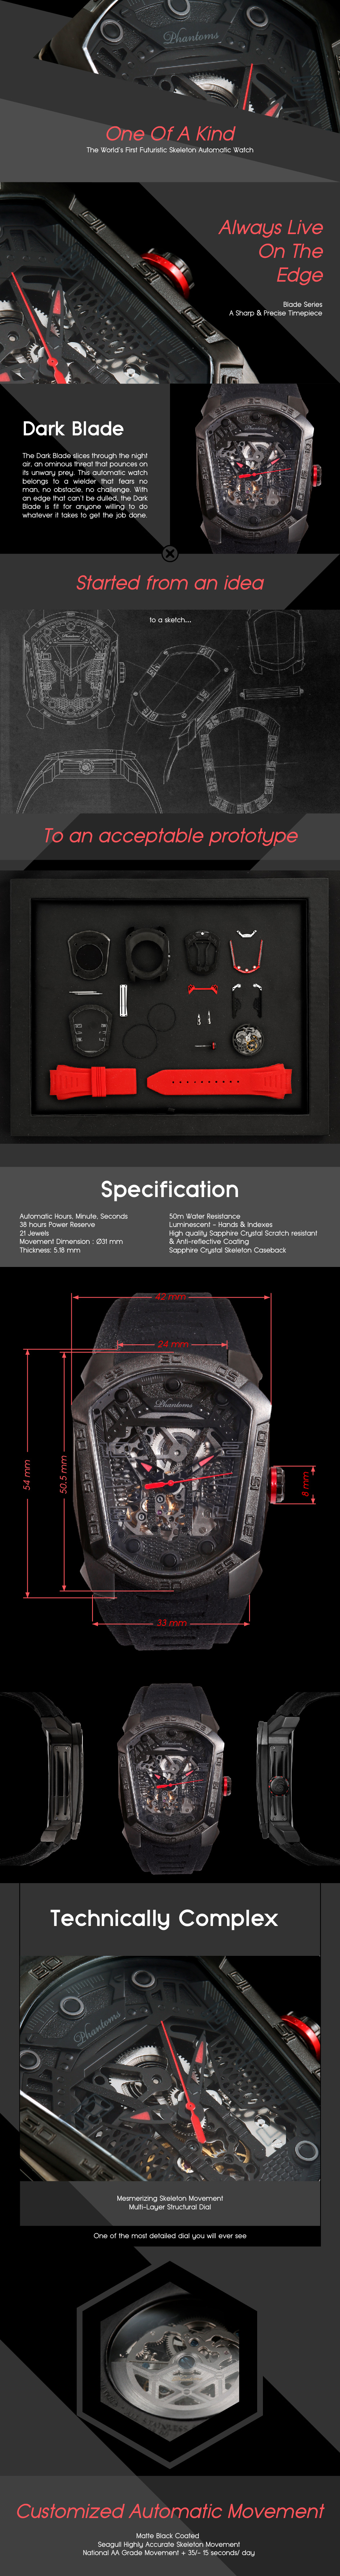 Dark Blade Futuristic Mechanical Skeleton Watch